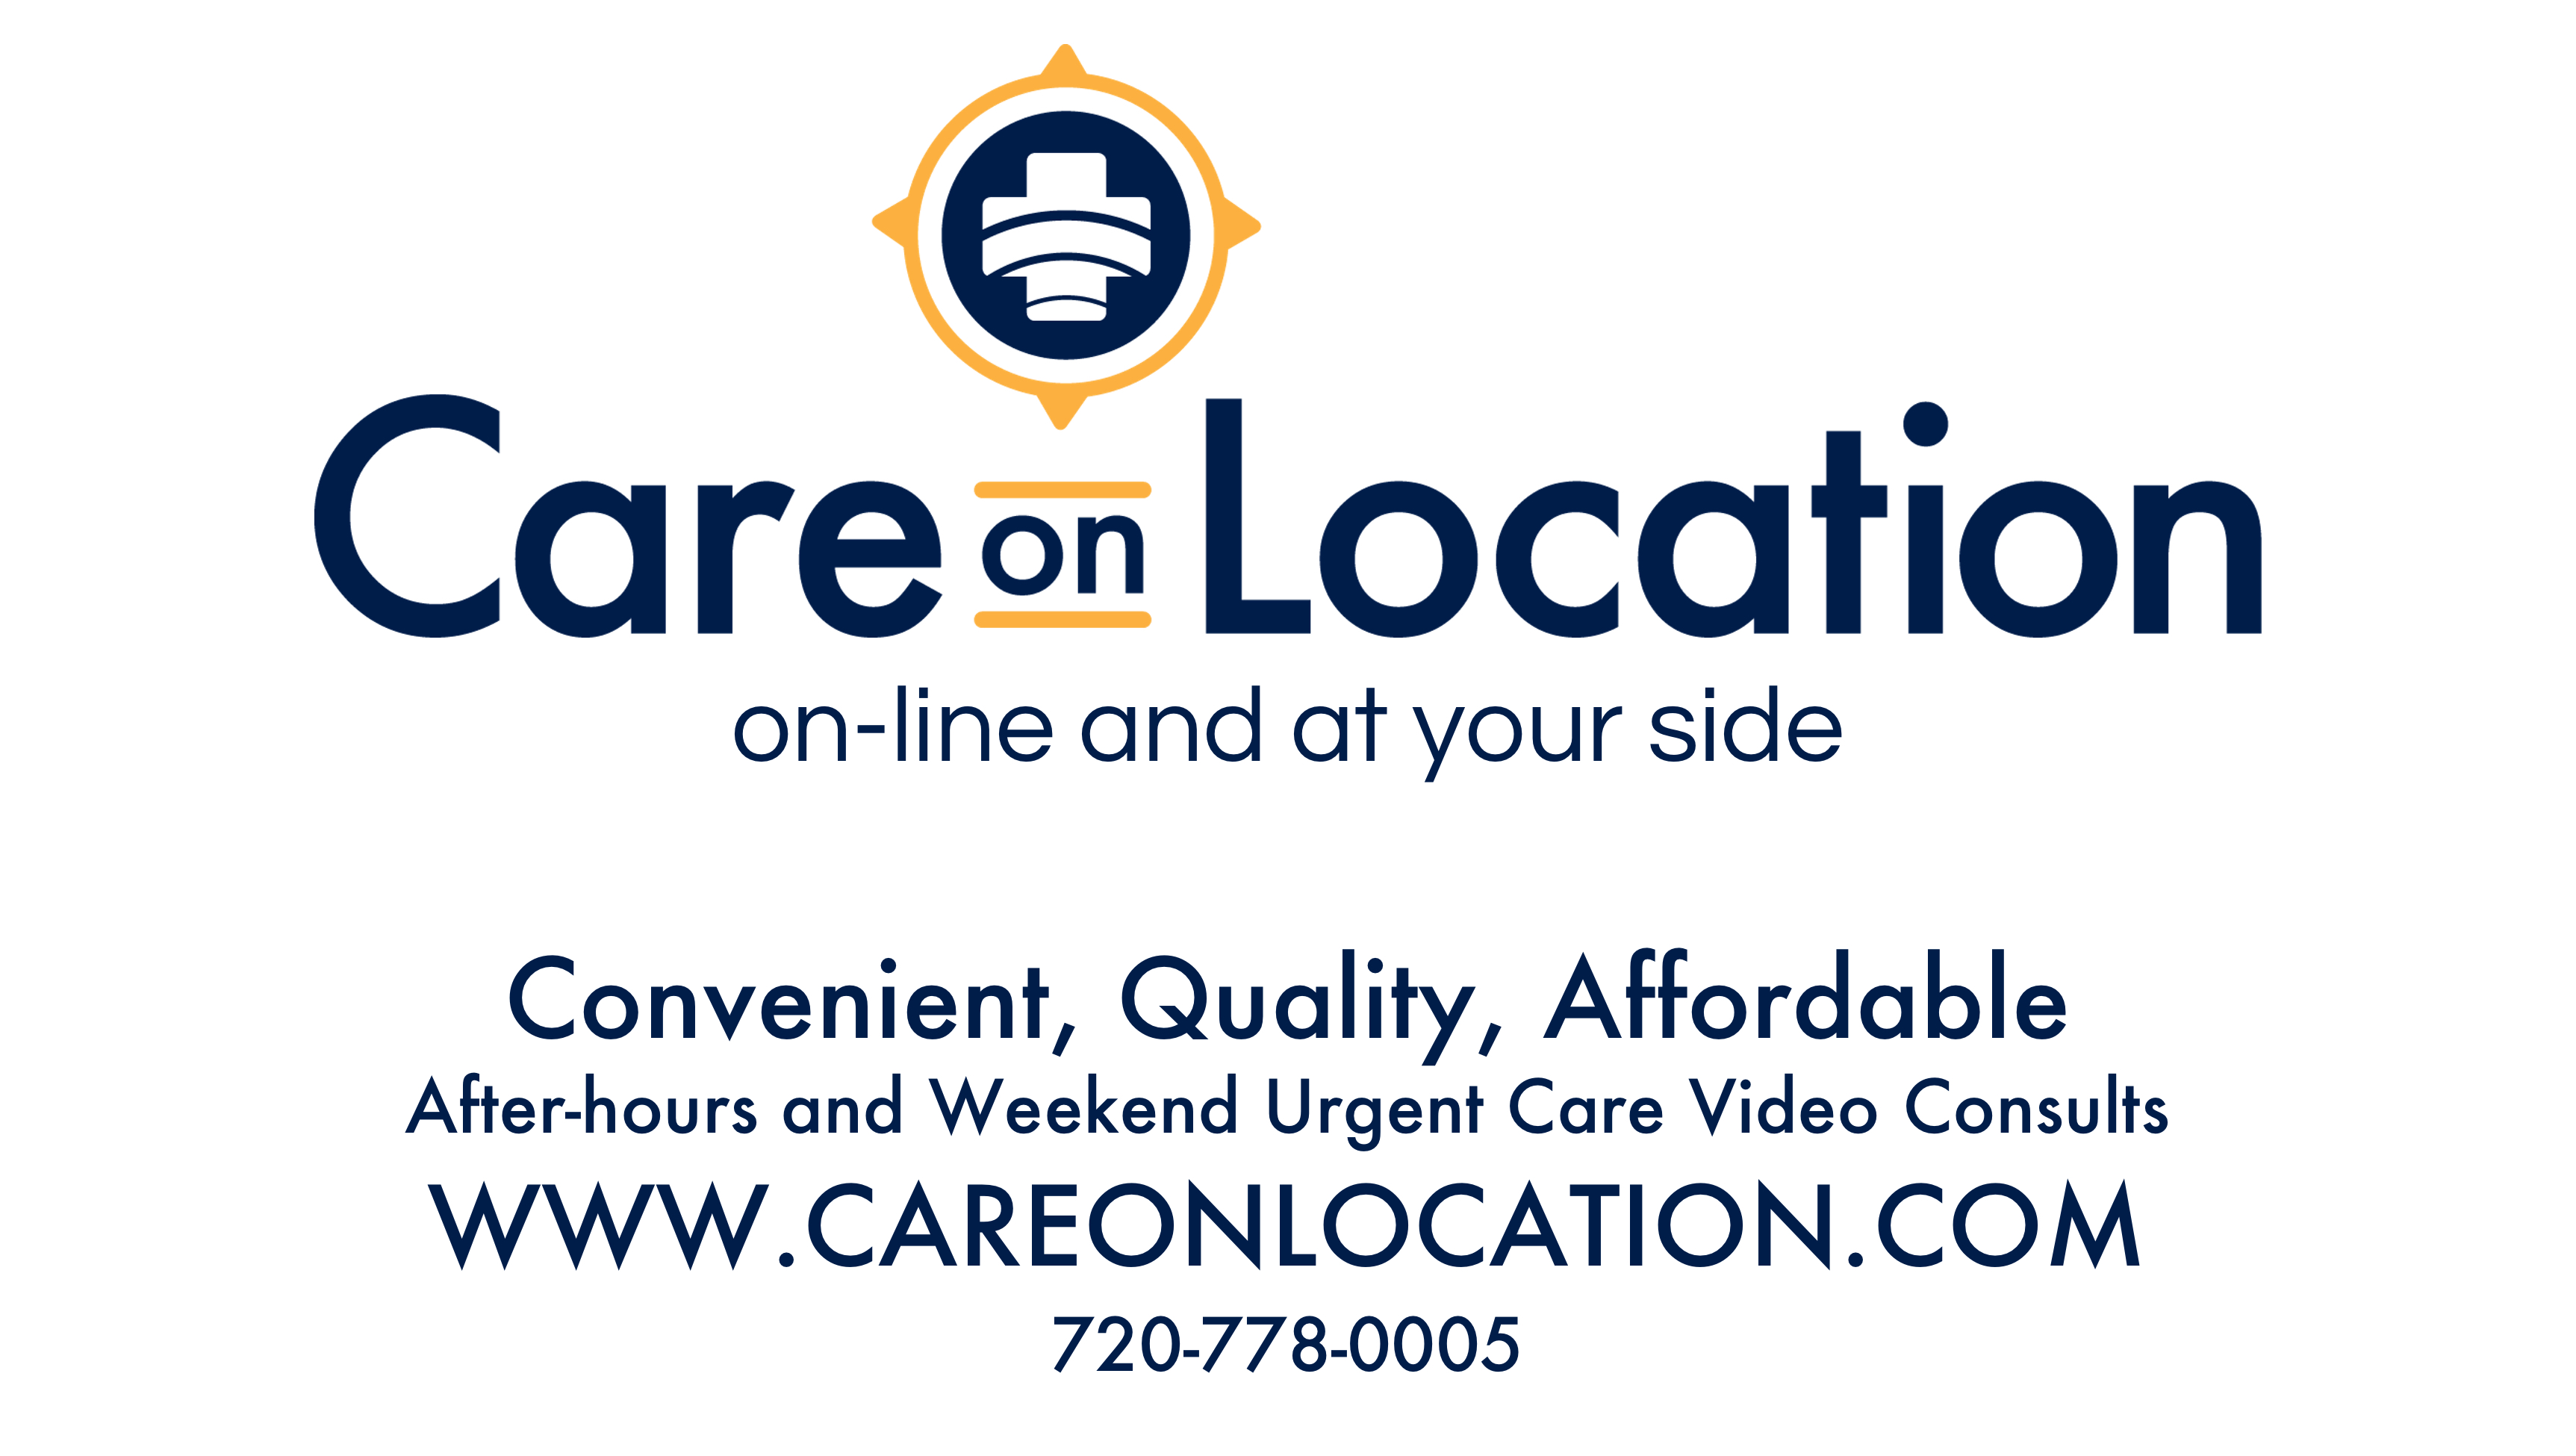 Photo for Care on Location - Online Urgent Care , (Denver, CO)